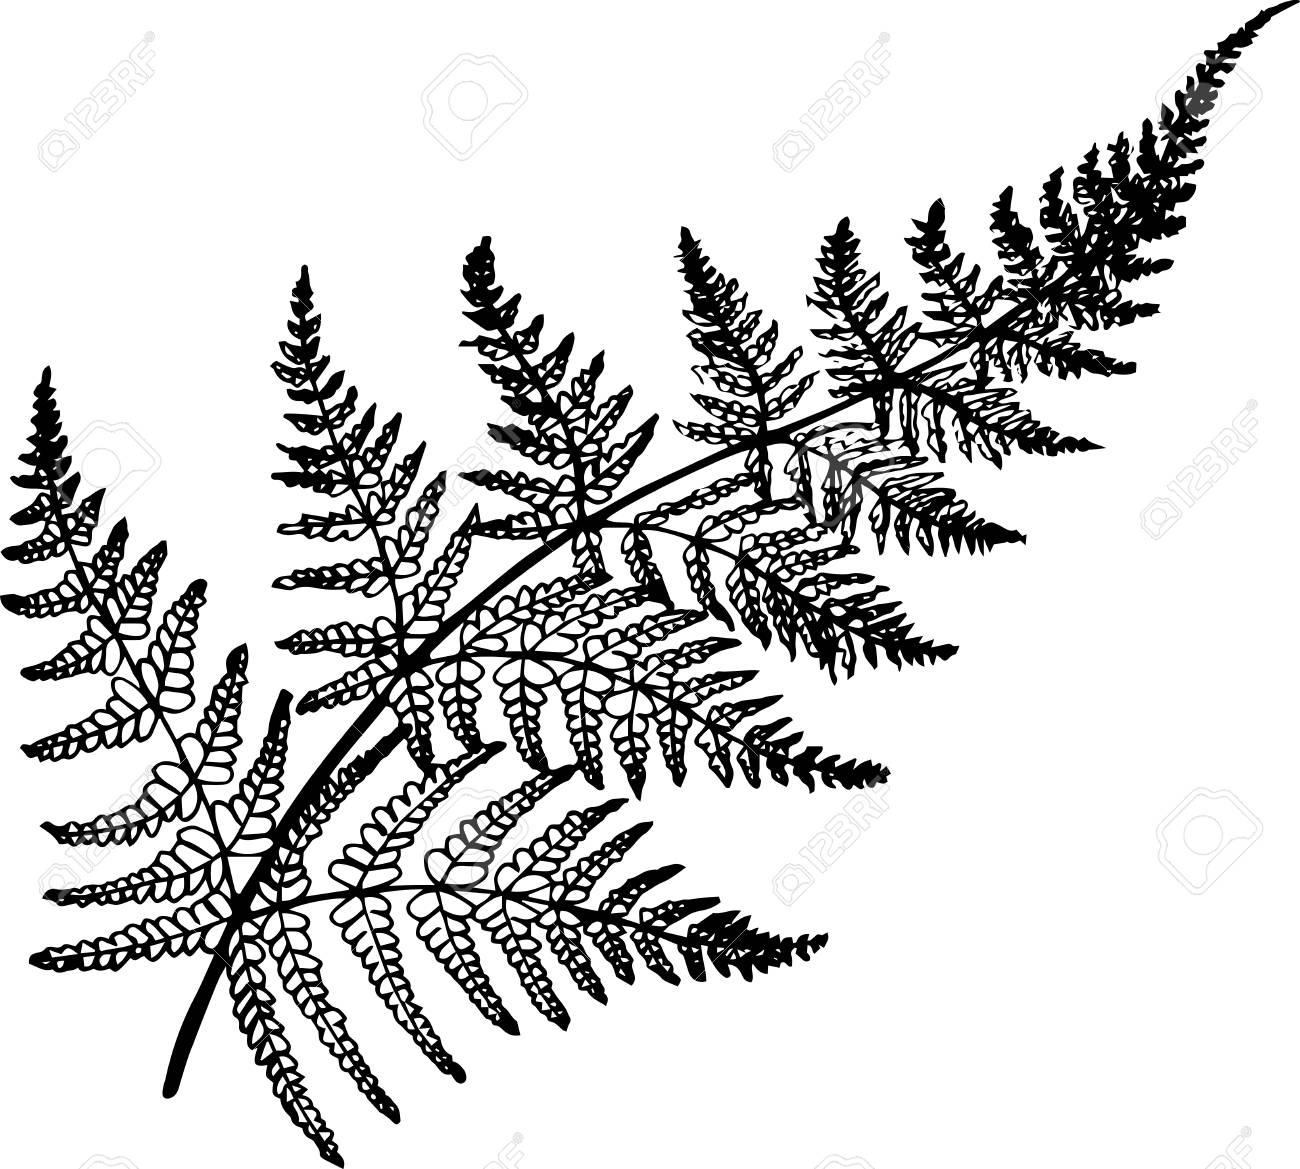 Black and white fern illustration. Ancient plant. » Clipart Station.